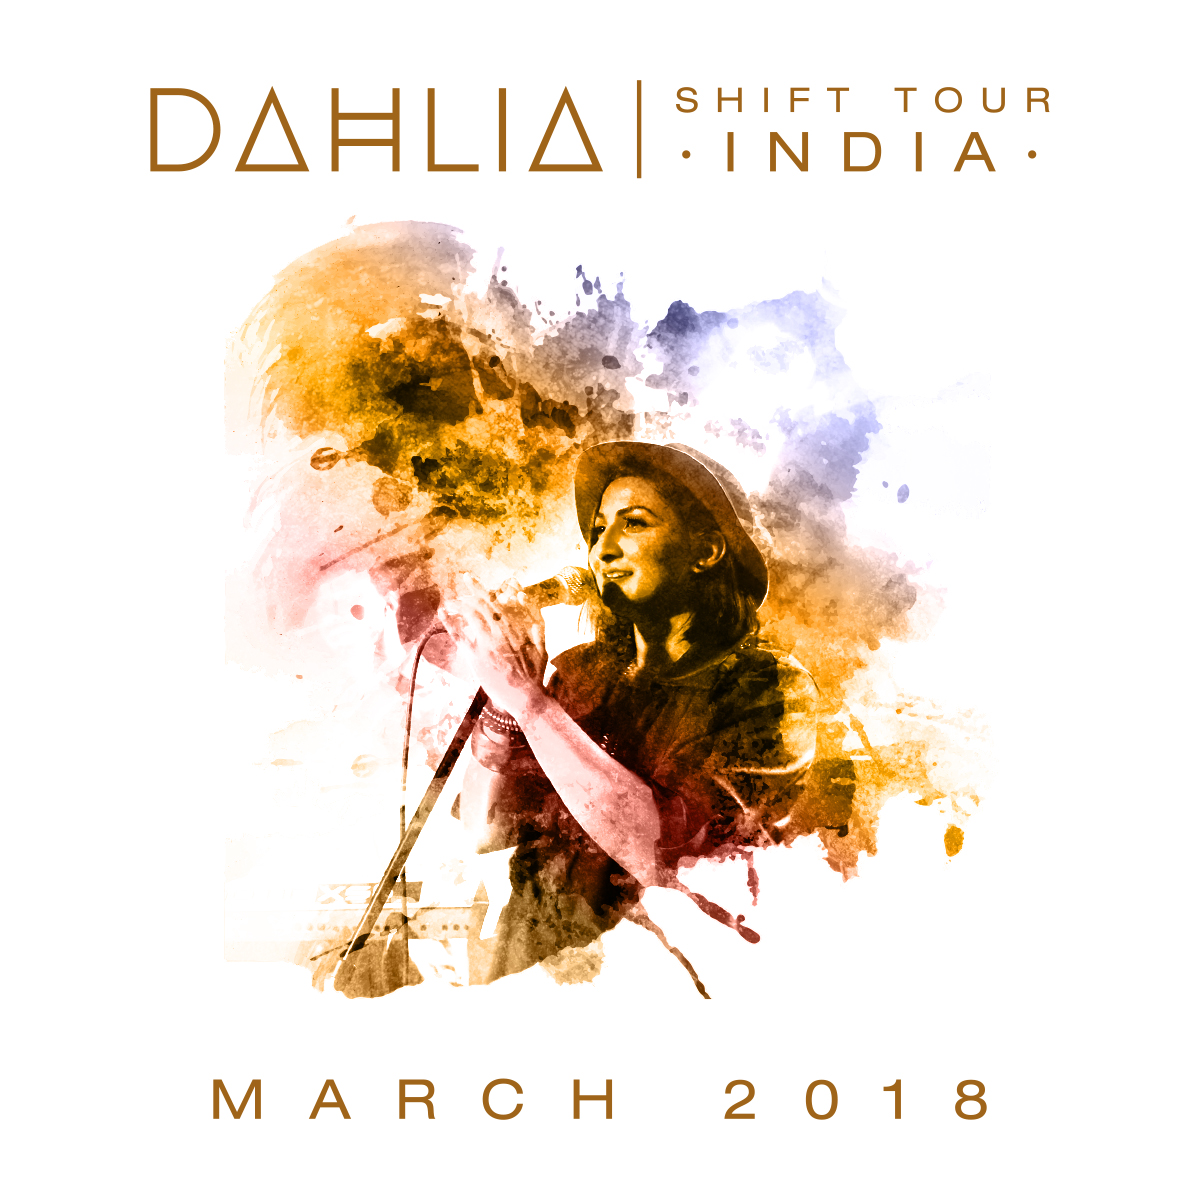 DAHLIA Shift Tour India